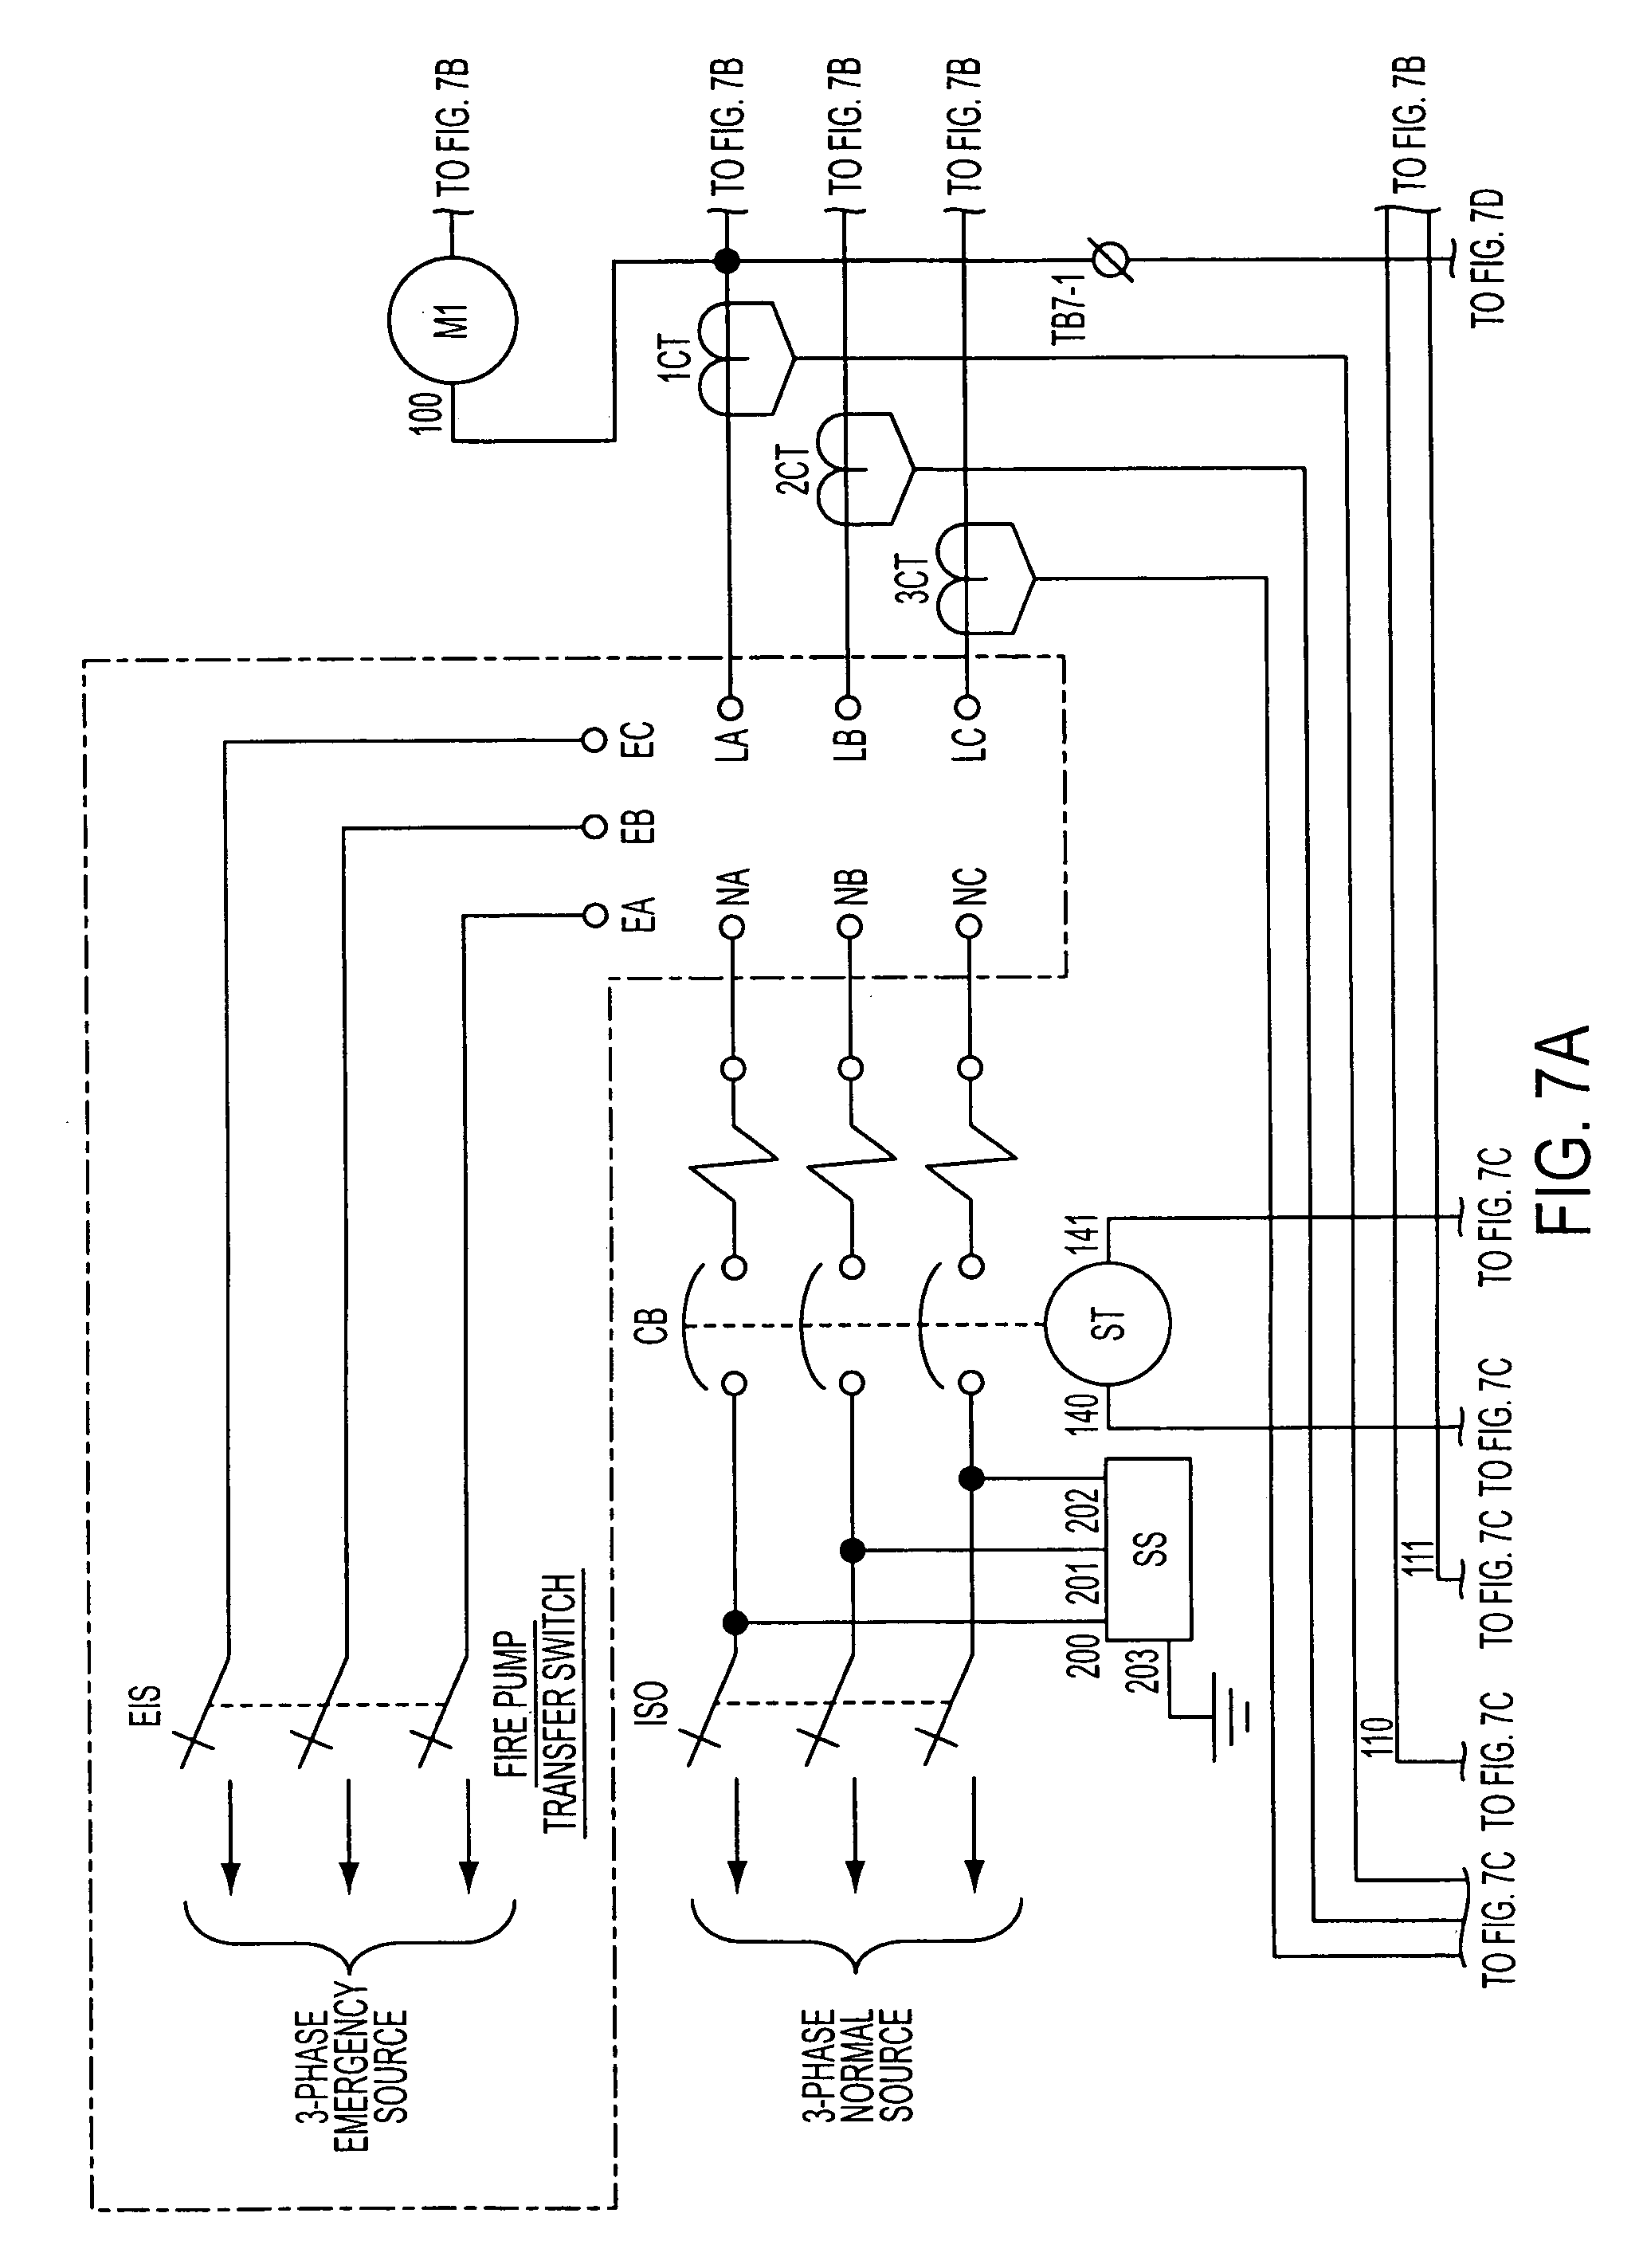 Wiring Diagram Jockey Pump : Patent us  integrated fire pump controller and